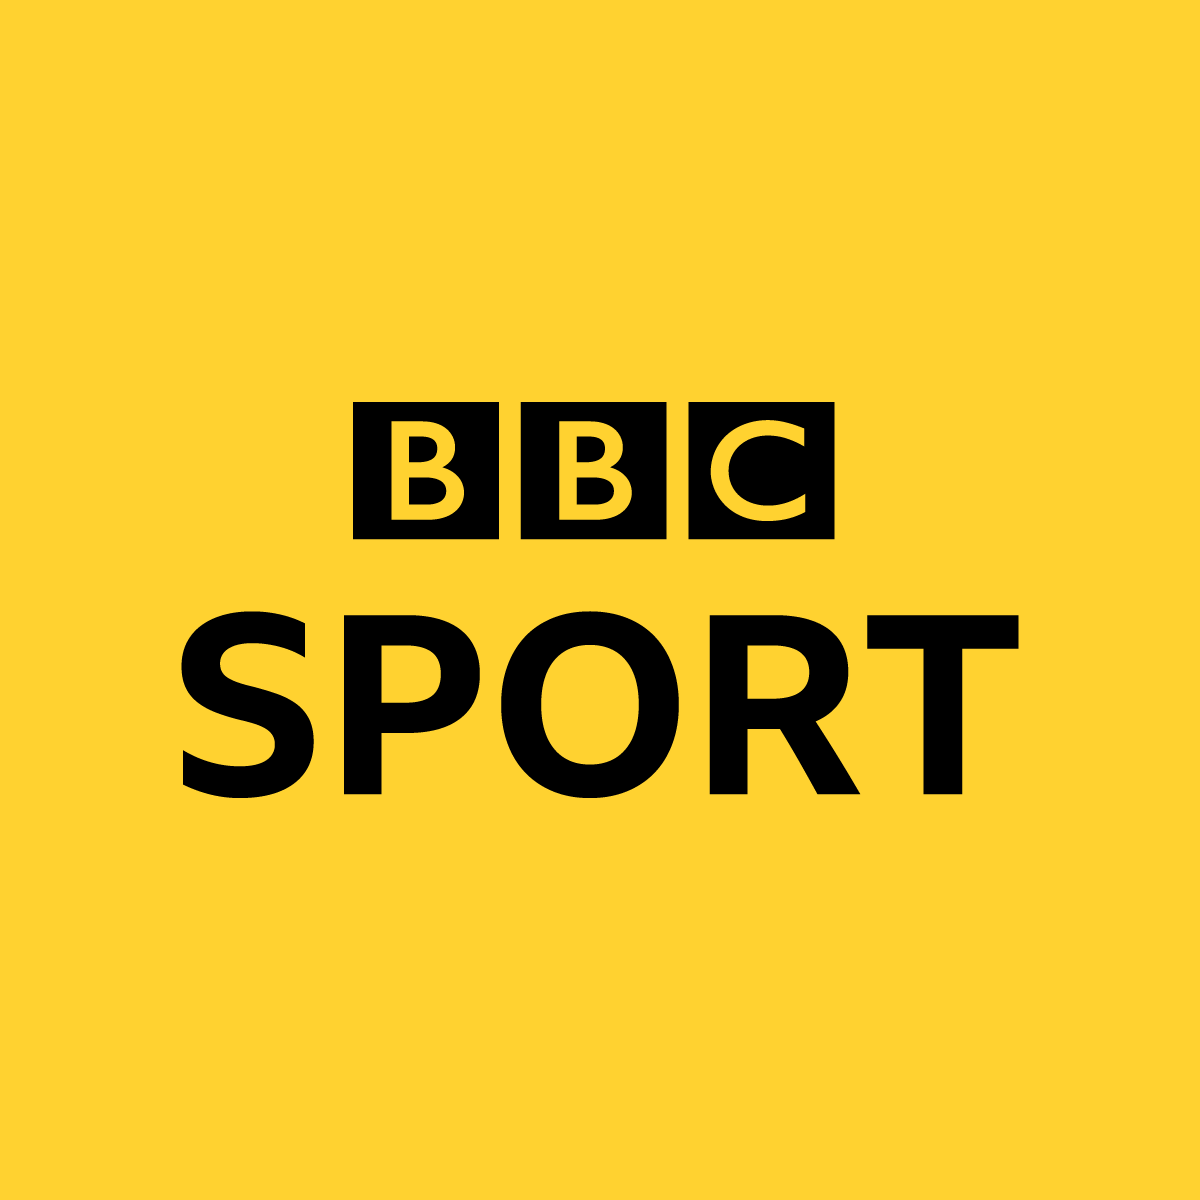 Laura Muir records third fastest indoor mile at Birmingham Indoor Grand Prix - BBC Sport thumbnail